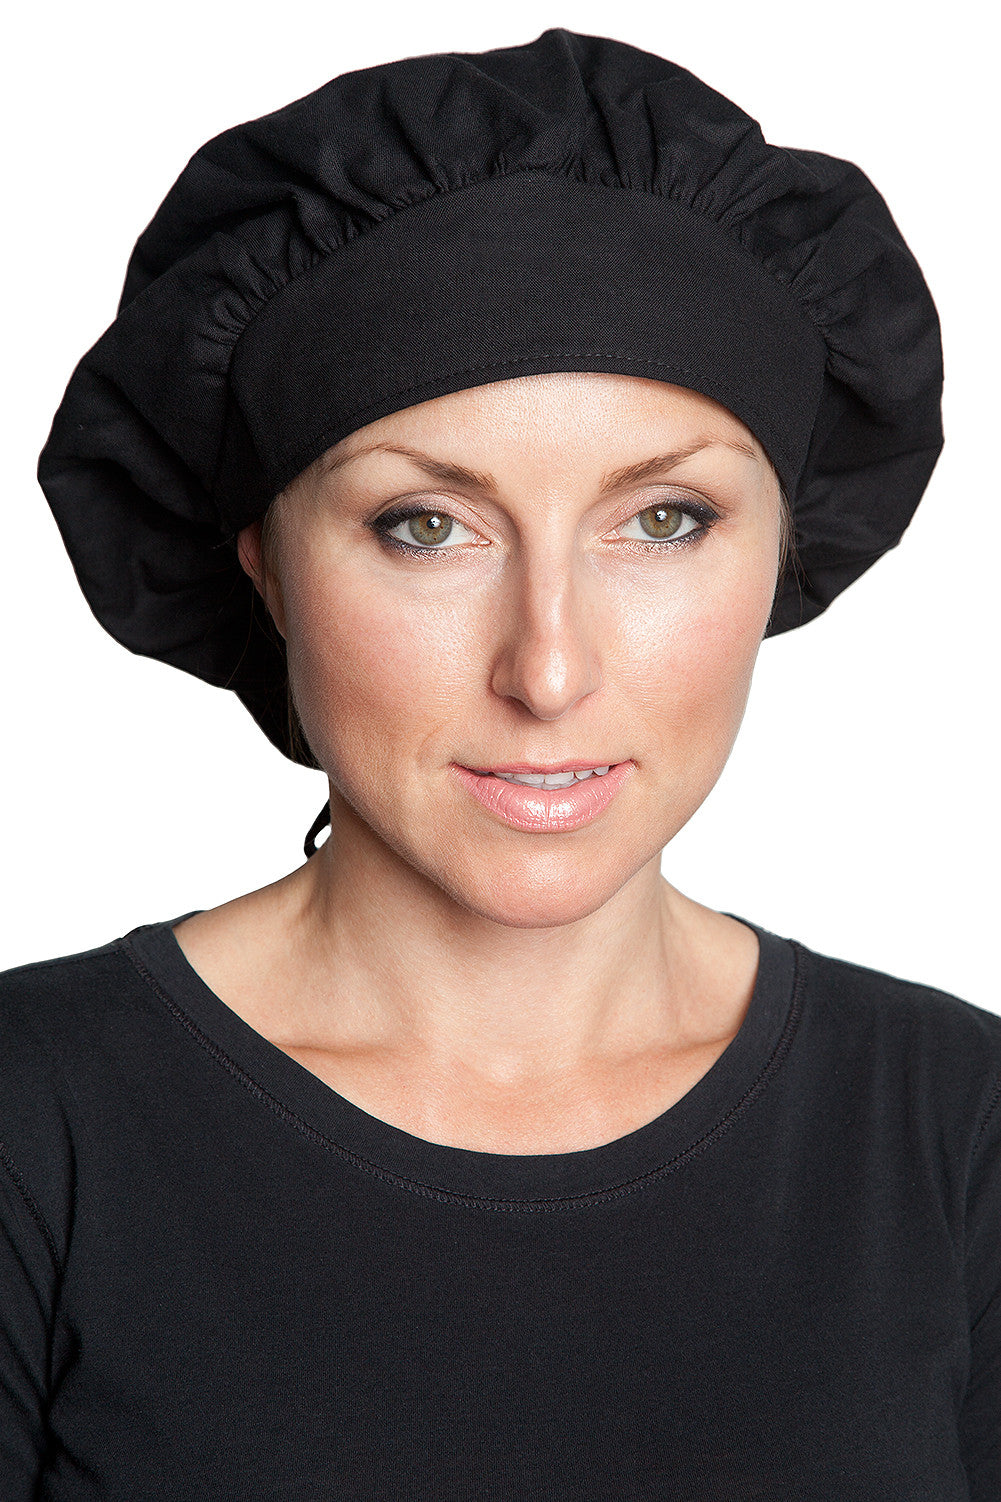 Fiumara Apparel Banded Bouffant Surgical Cap-100/% Cotton Made in USA